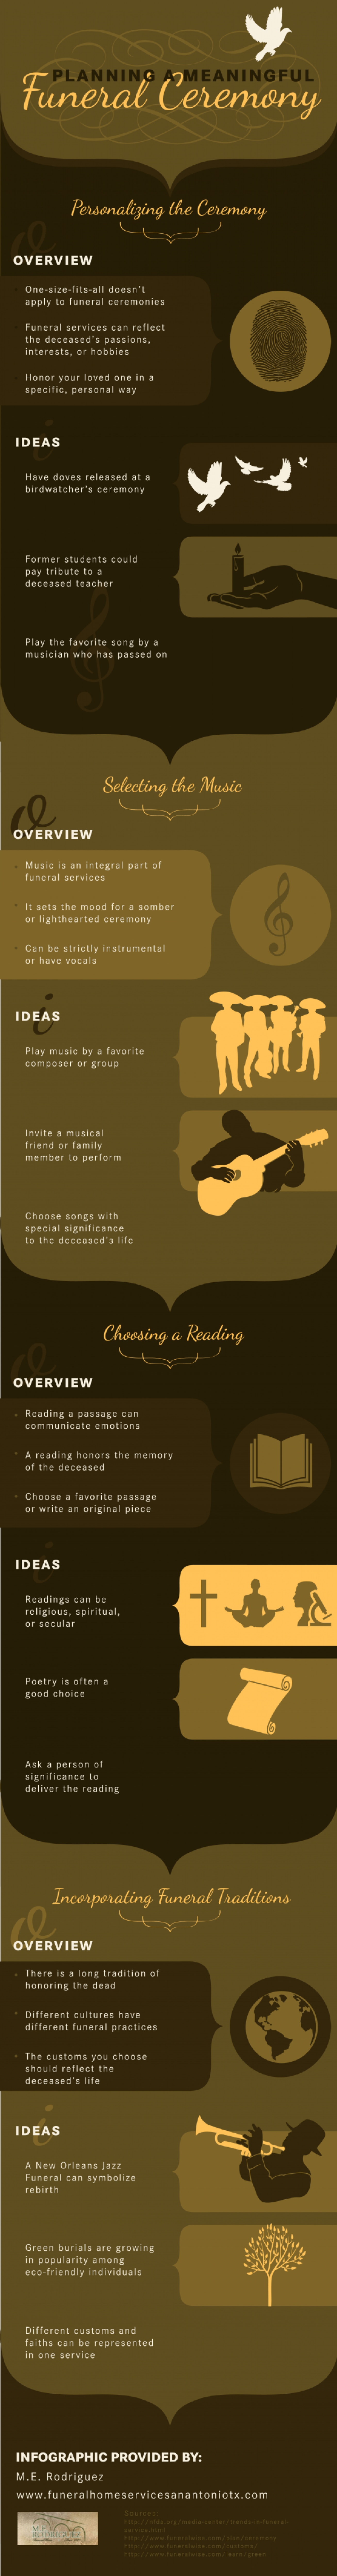 Planning a Meaningful Funeral Ceremony Infographic